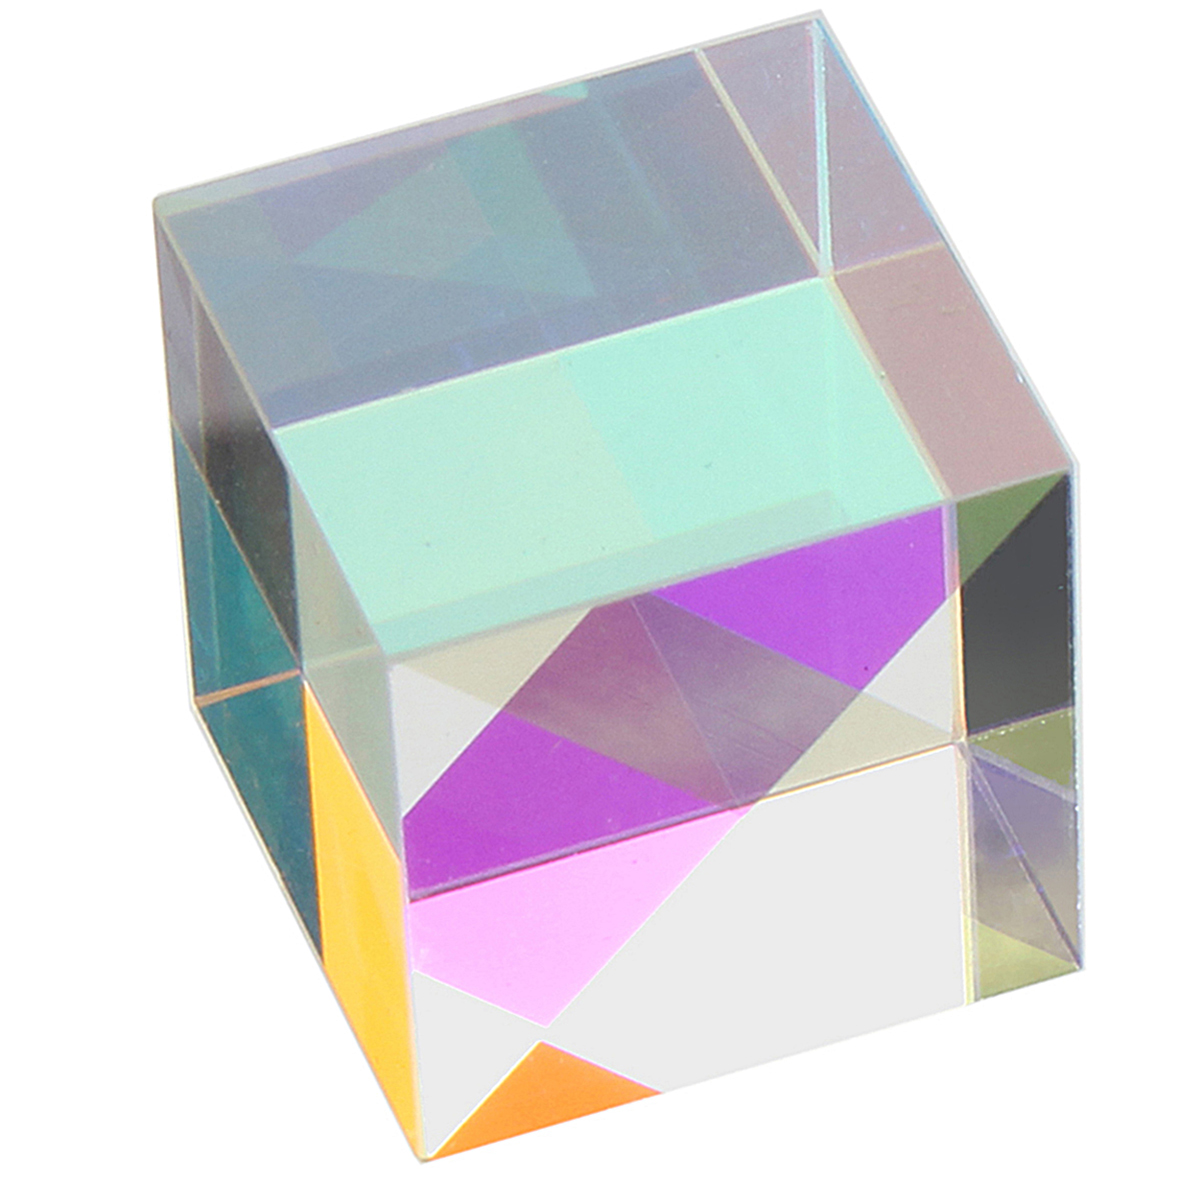 20x20mm K9 Cube Prism Laser Beam Combine Cube Splitter Glass Decor Square Cube RGB Instruments Teaching Tools Decoration